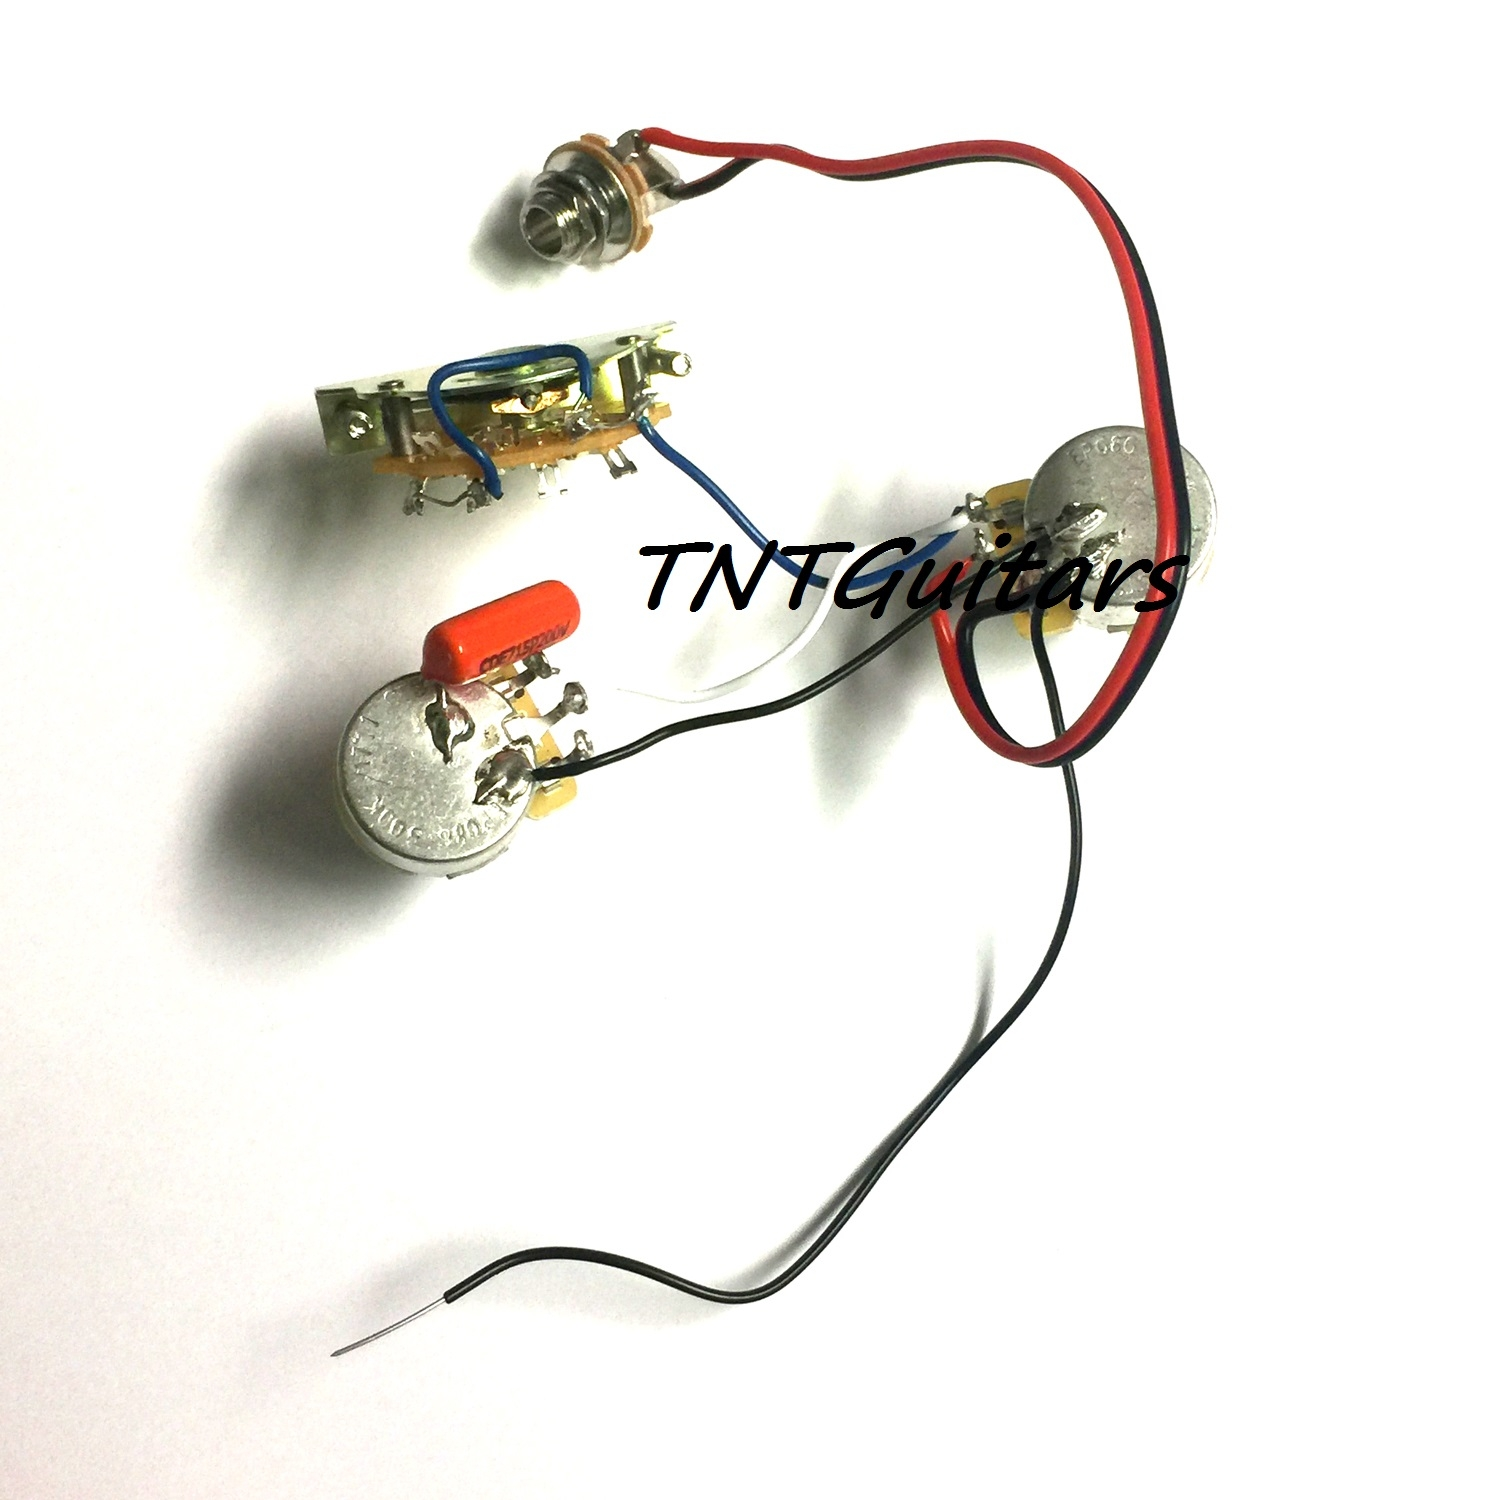 hight resolution of 1v1t prewired harness 2 pickup cts premierpots fender 3w switch